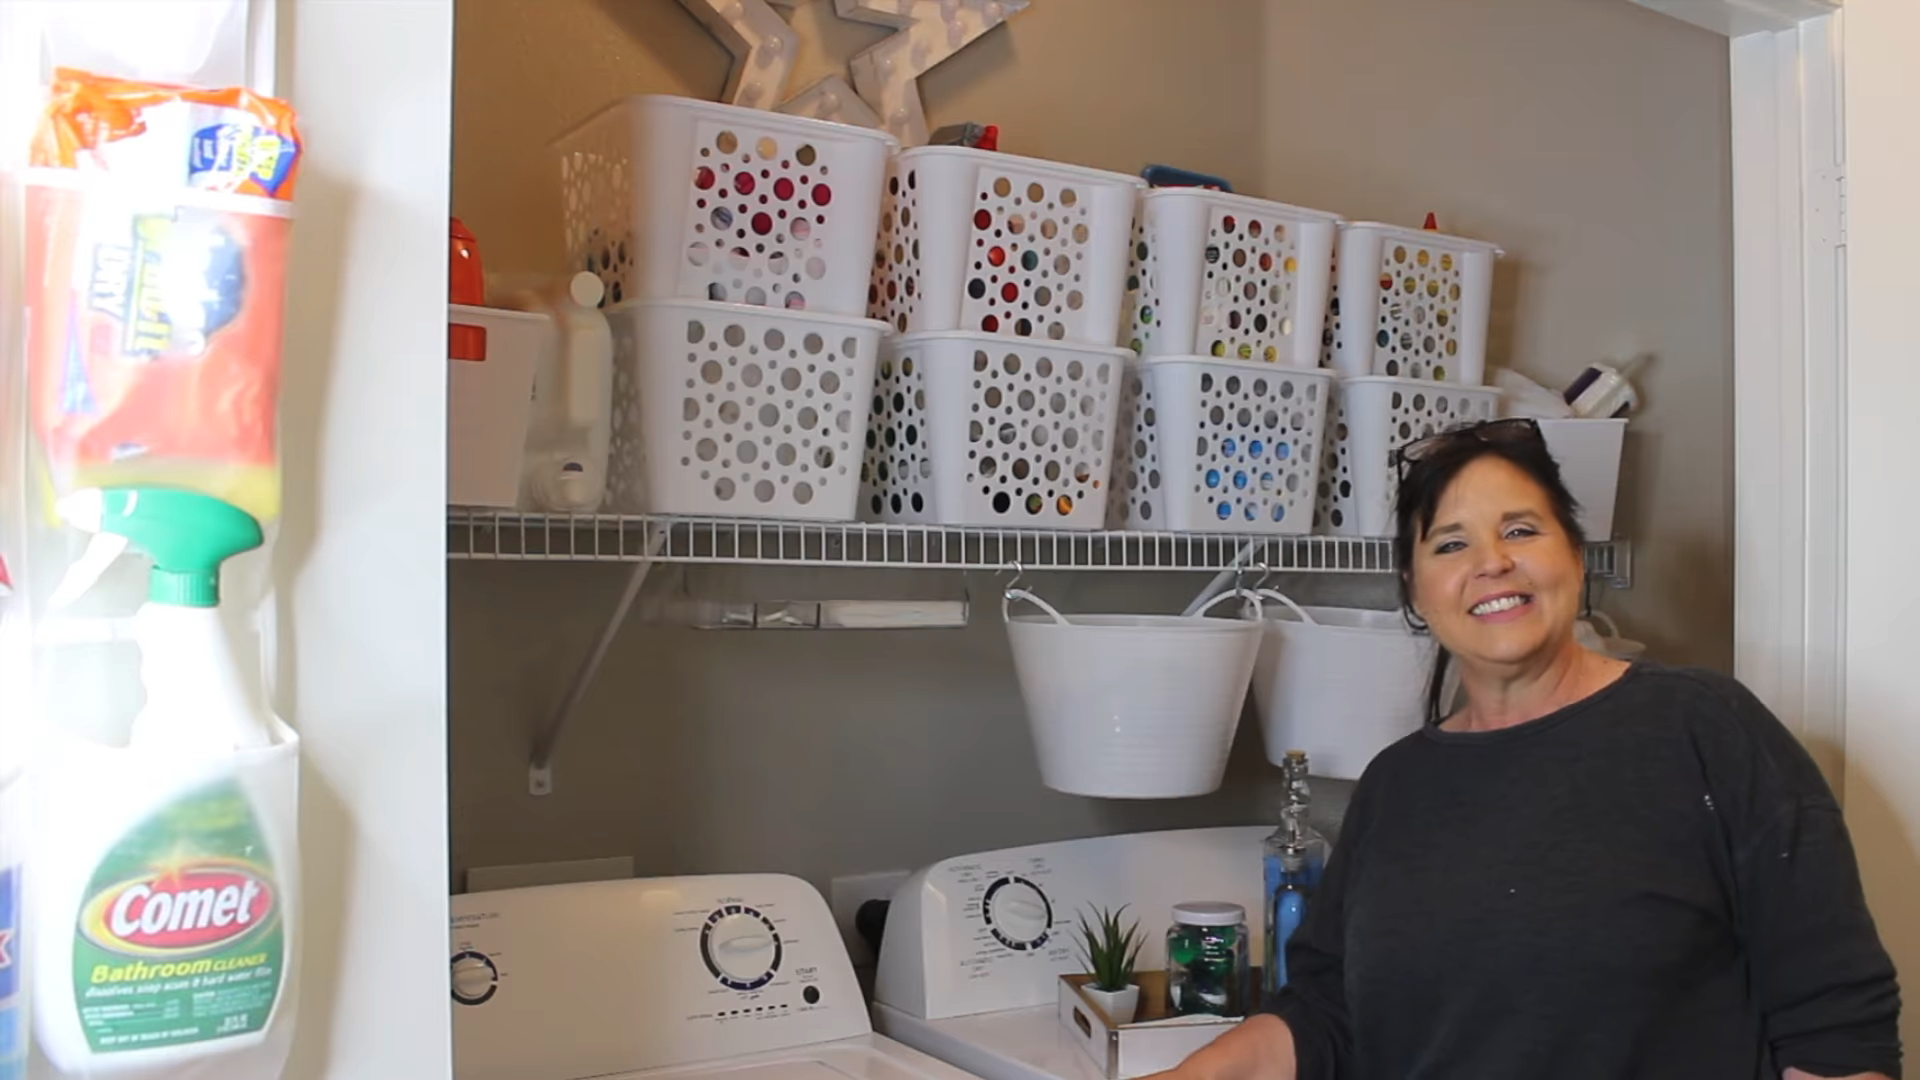 Tonya Payne and her Laundry Room